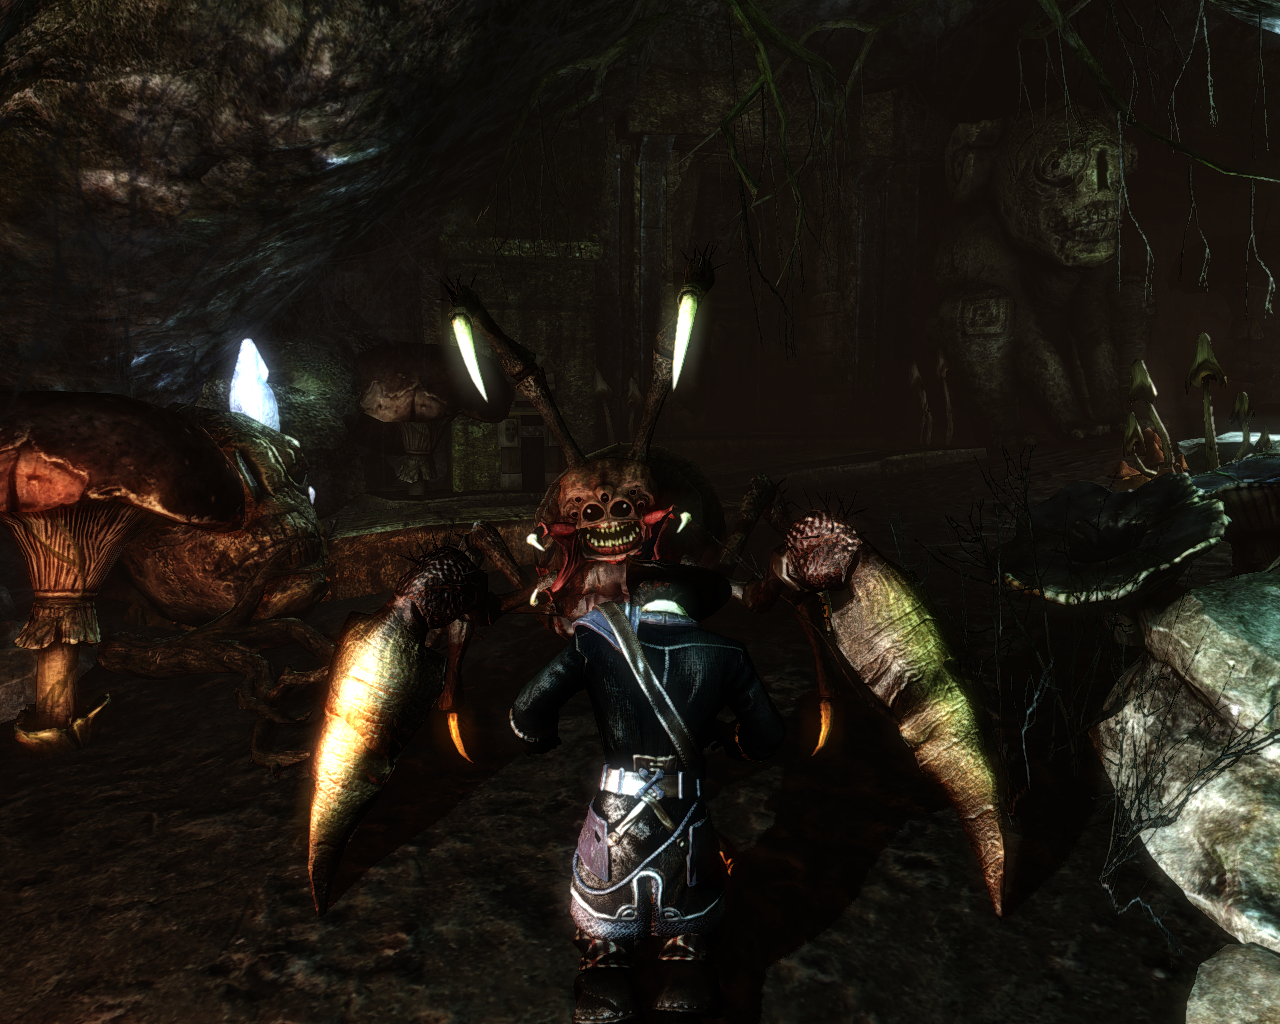 Risen 2: Dark Waters Windows This spider-like creature seems to be smiling